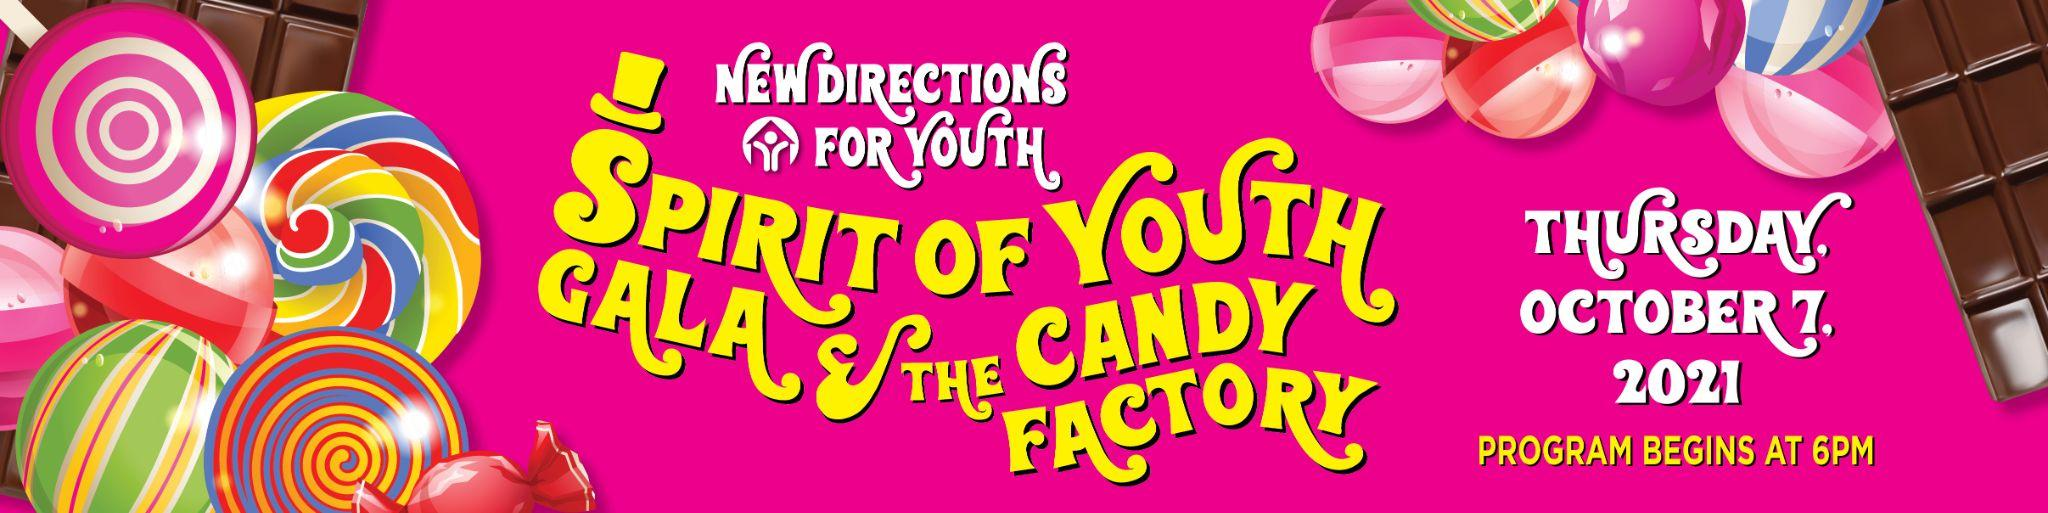 New Direction for Youth flyer